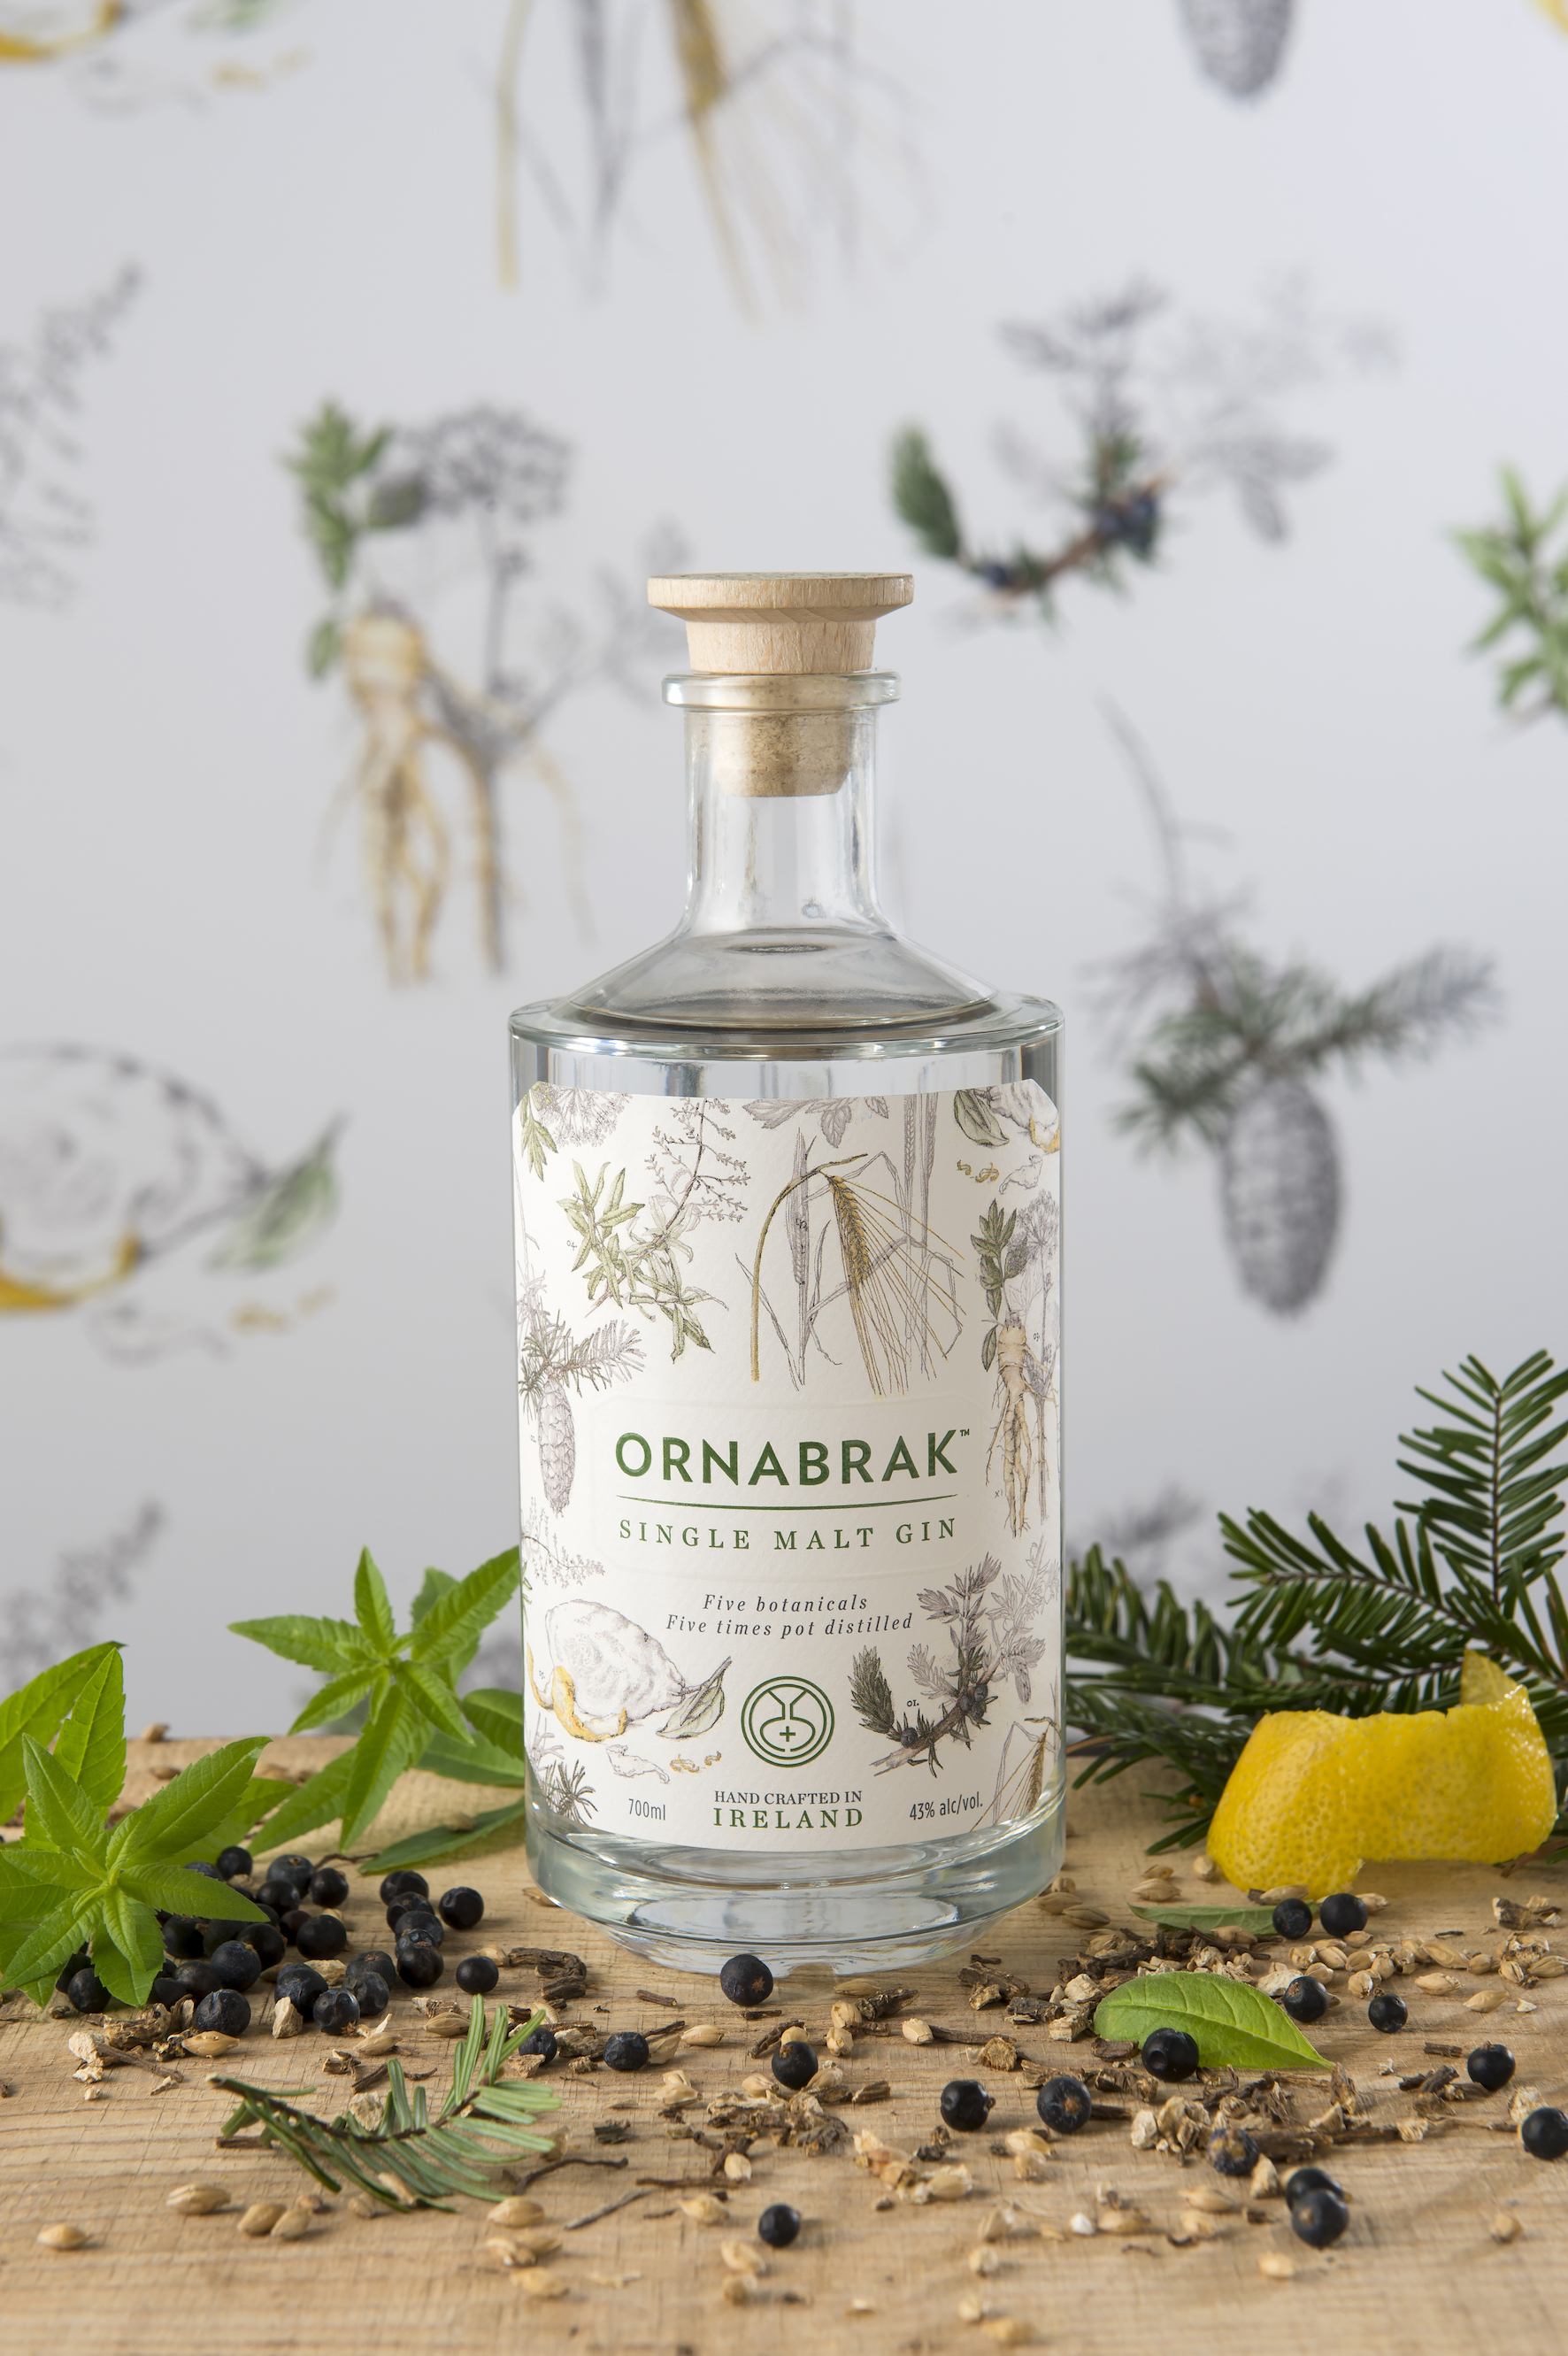 Ornabrak_Single_Malt_Gin_botanical_backdrop_and_fresh_botanicals.jpg